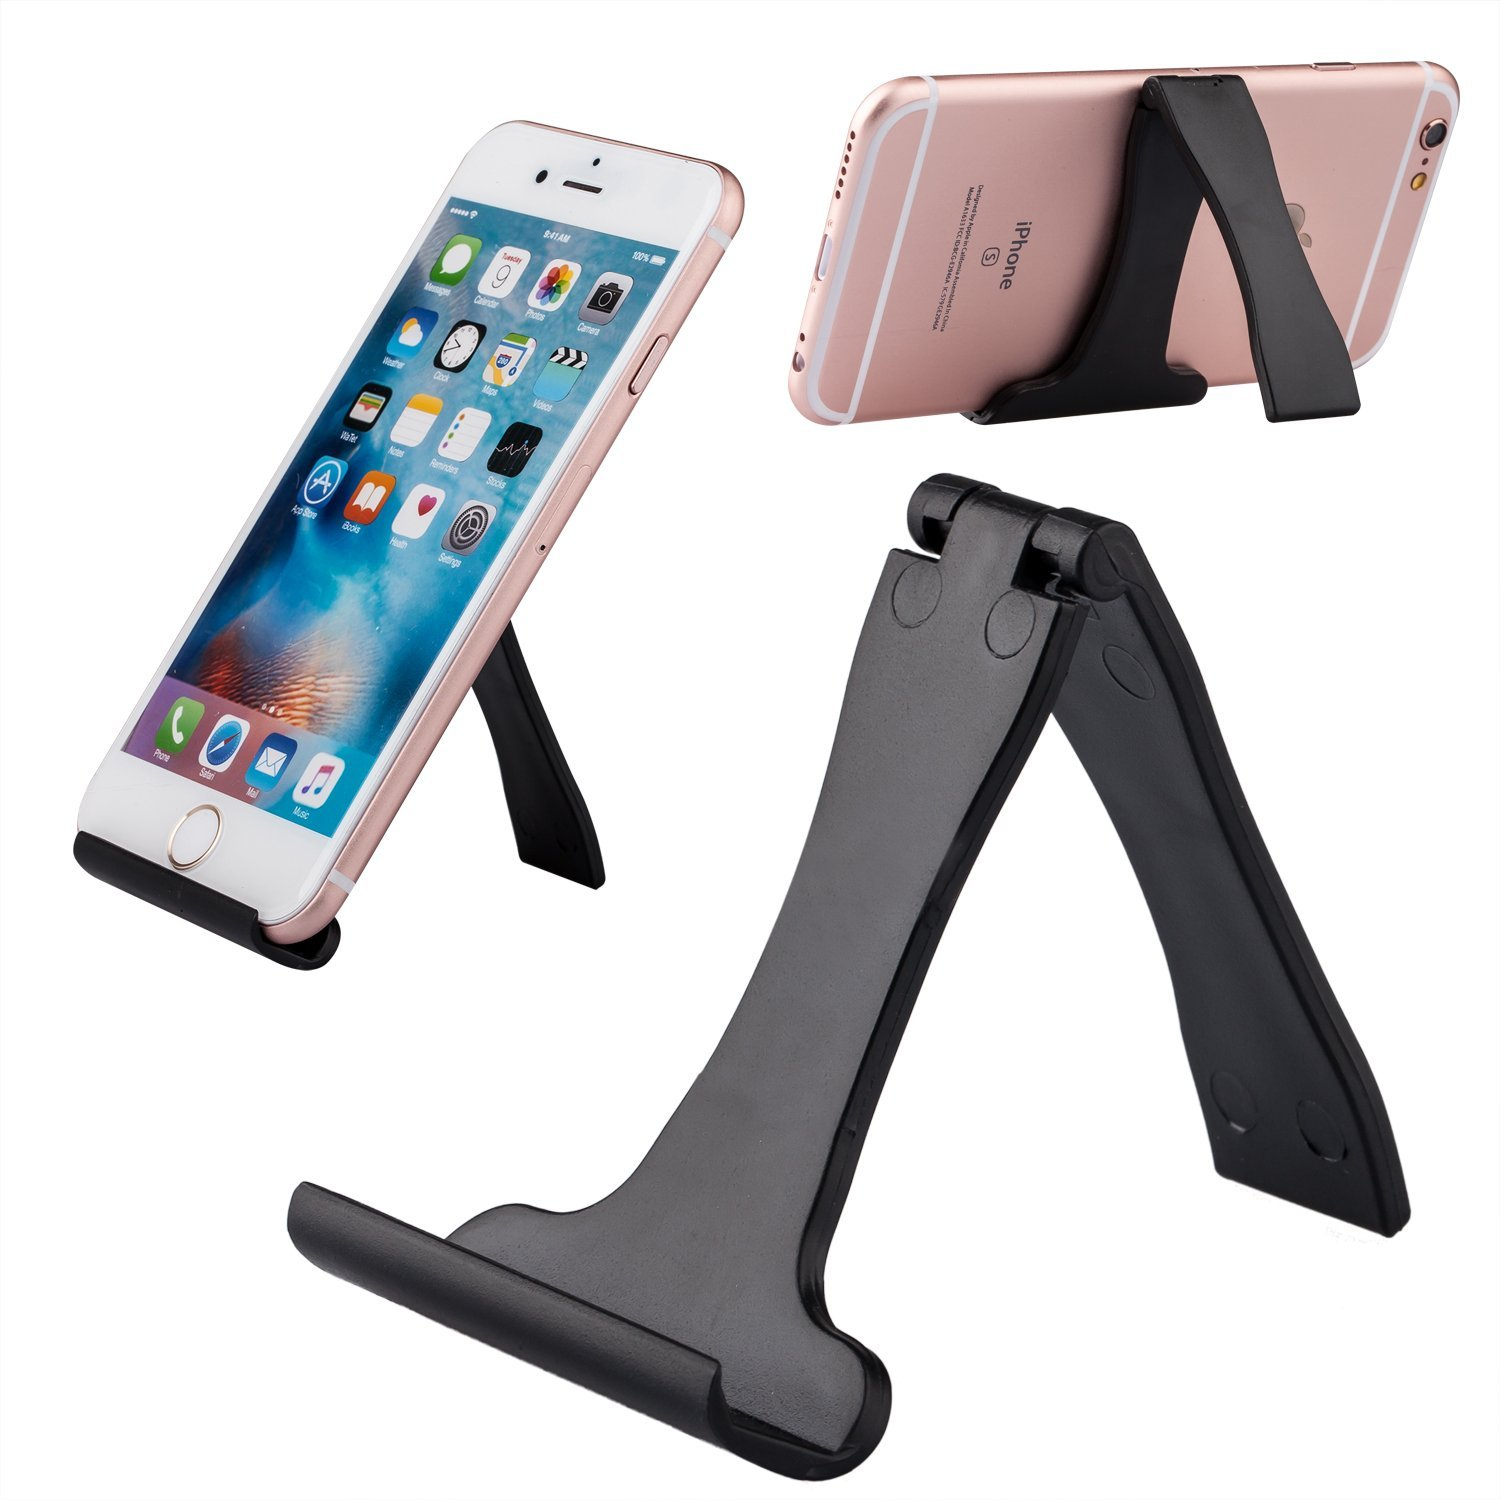 Buyus iPhone 7 / 7 Plus Stand for Desk, fits Apple iPhone 6 / 6S, Plus, 5 / 5S / 5C / SE, 4 / 4S, iPod, Samsung Galaxy J2, S7, S6, Edge, S5, S4, S3, Note 5, 4, 3, LG G5, G4, G3 and More (Black)